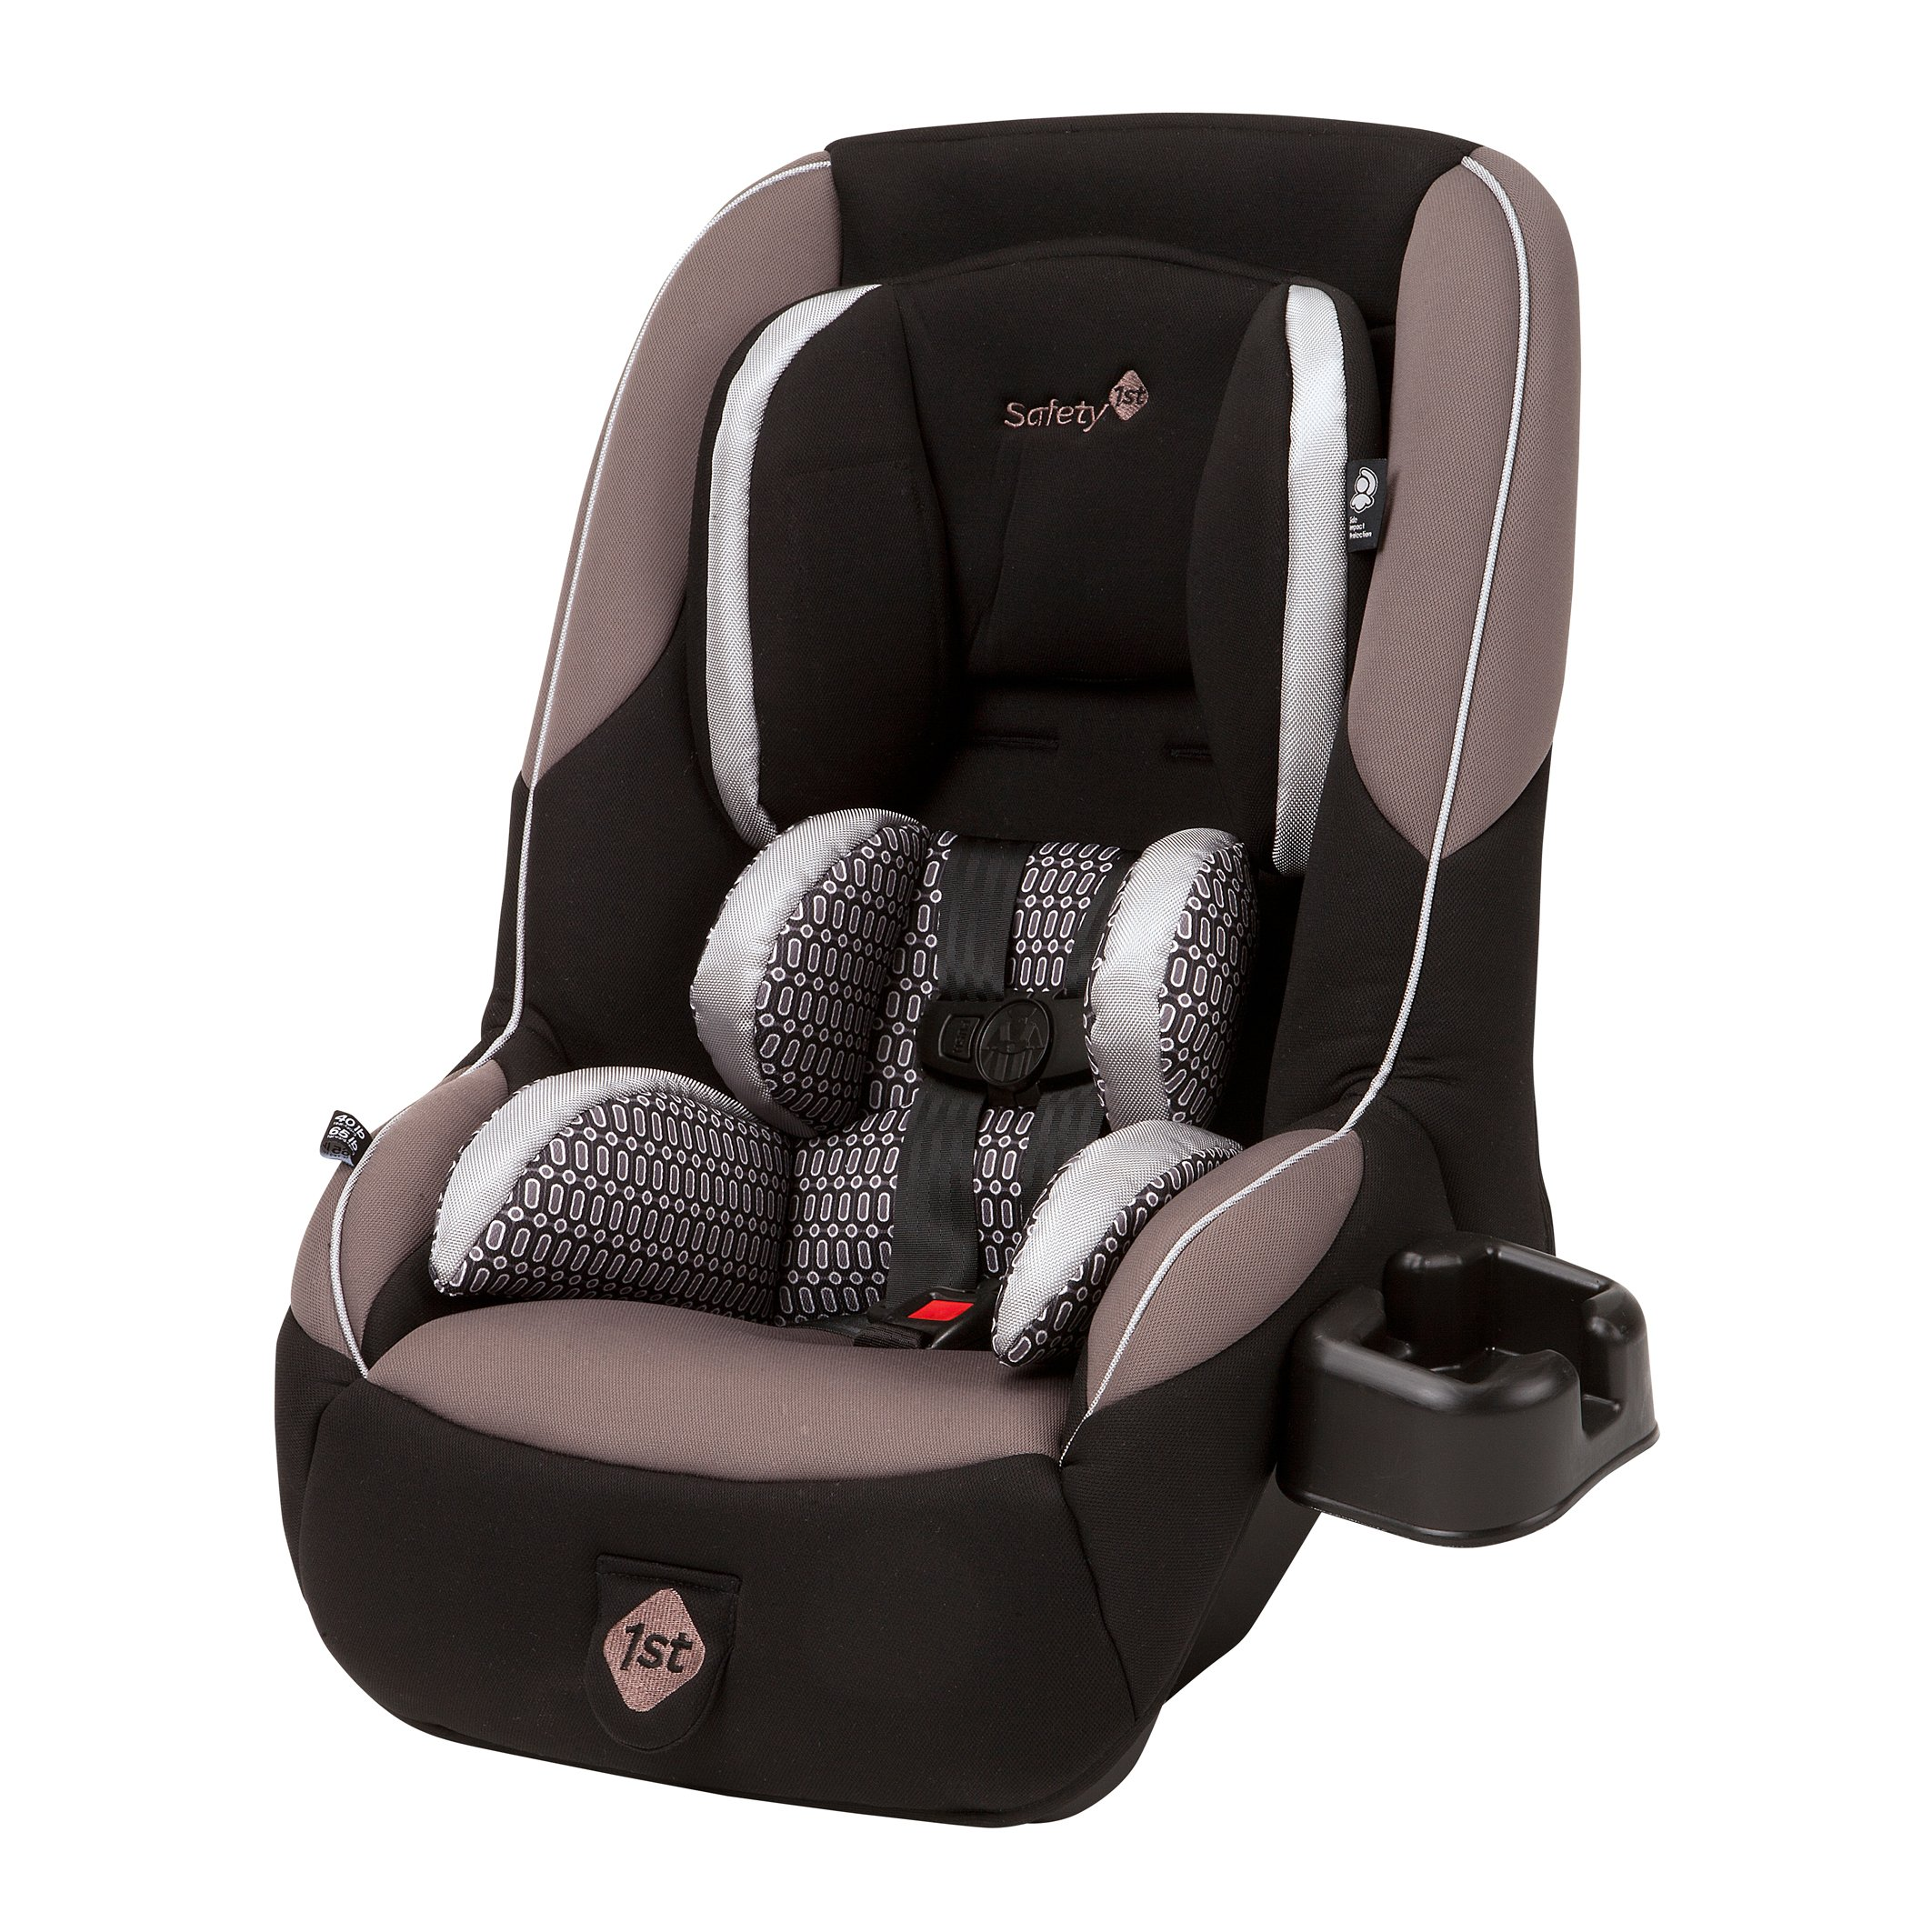 amazon com safety 1st guide 65 sport convertible car seat, glam baby